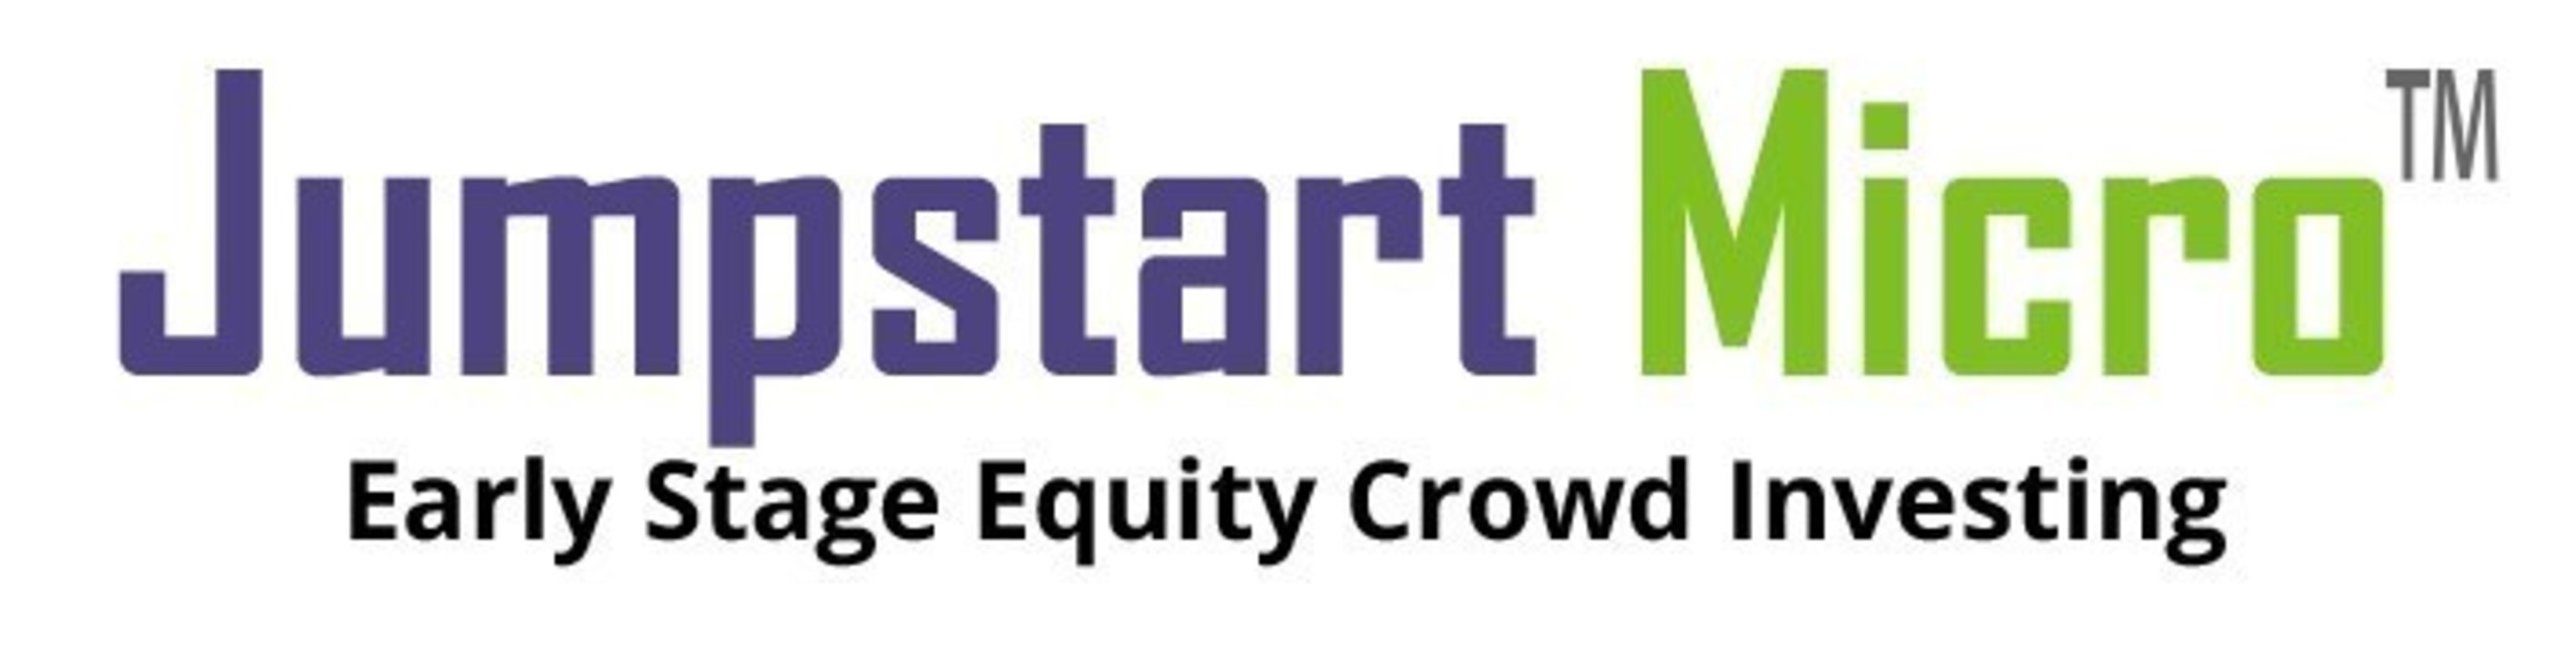 Jumpstart Micro Launches Three New Crowdfunding Investment Opportunities